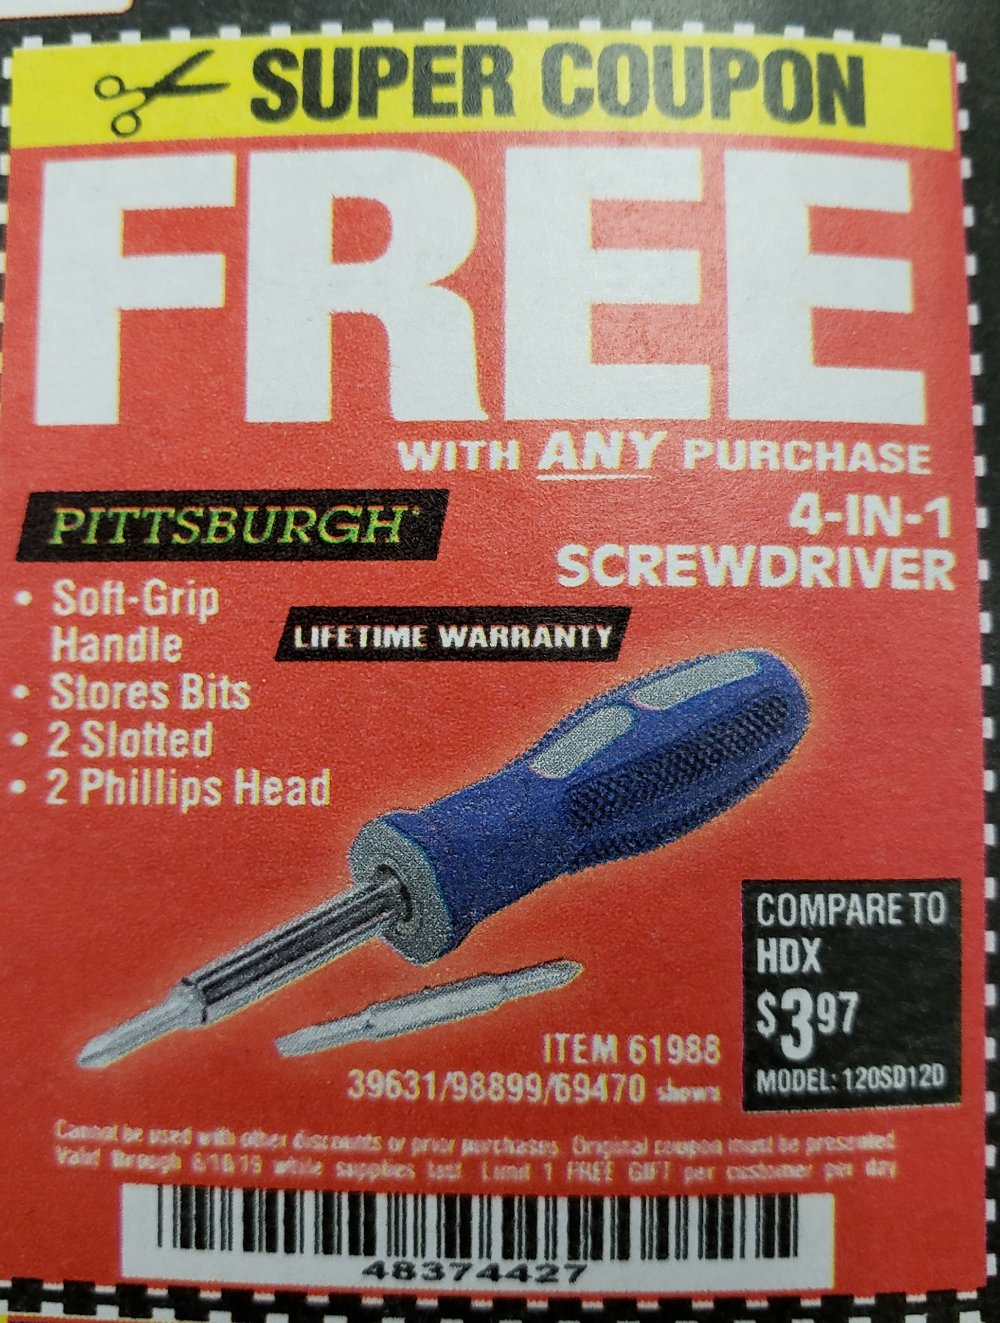 Harbor Freight Coupon, HF Coupons - FREE - 4-in-1 Screwdriver